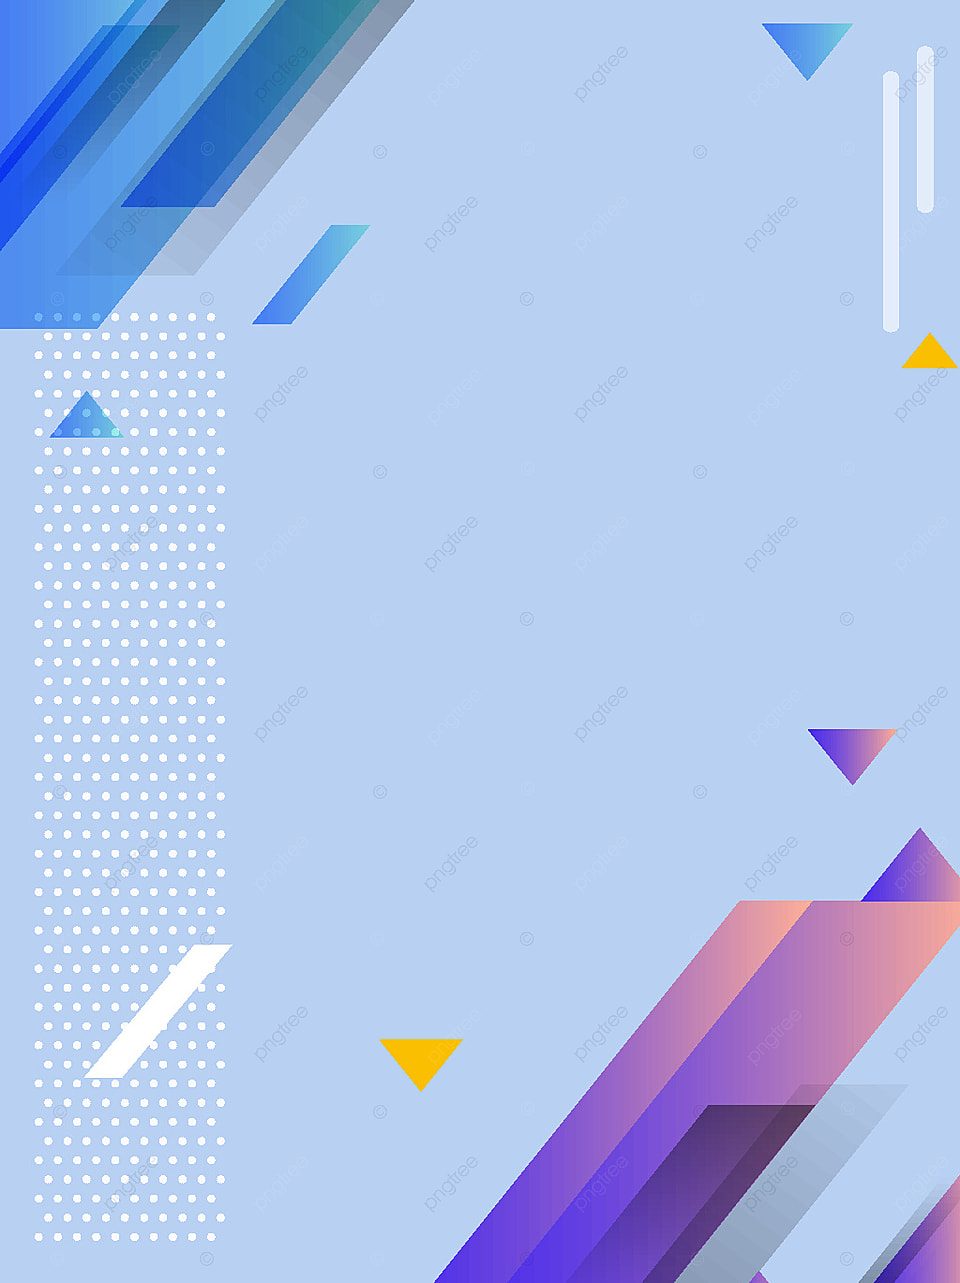 Background Warna Png : background, warna, Business, Geometric, Gradient, Color, Overlay, Point, Background, Geometric,, Gradient,, Image, Download